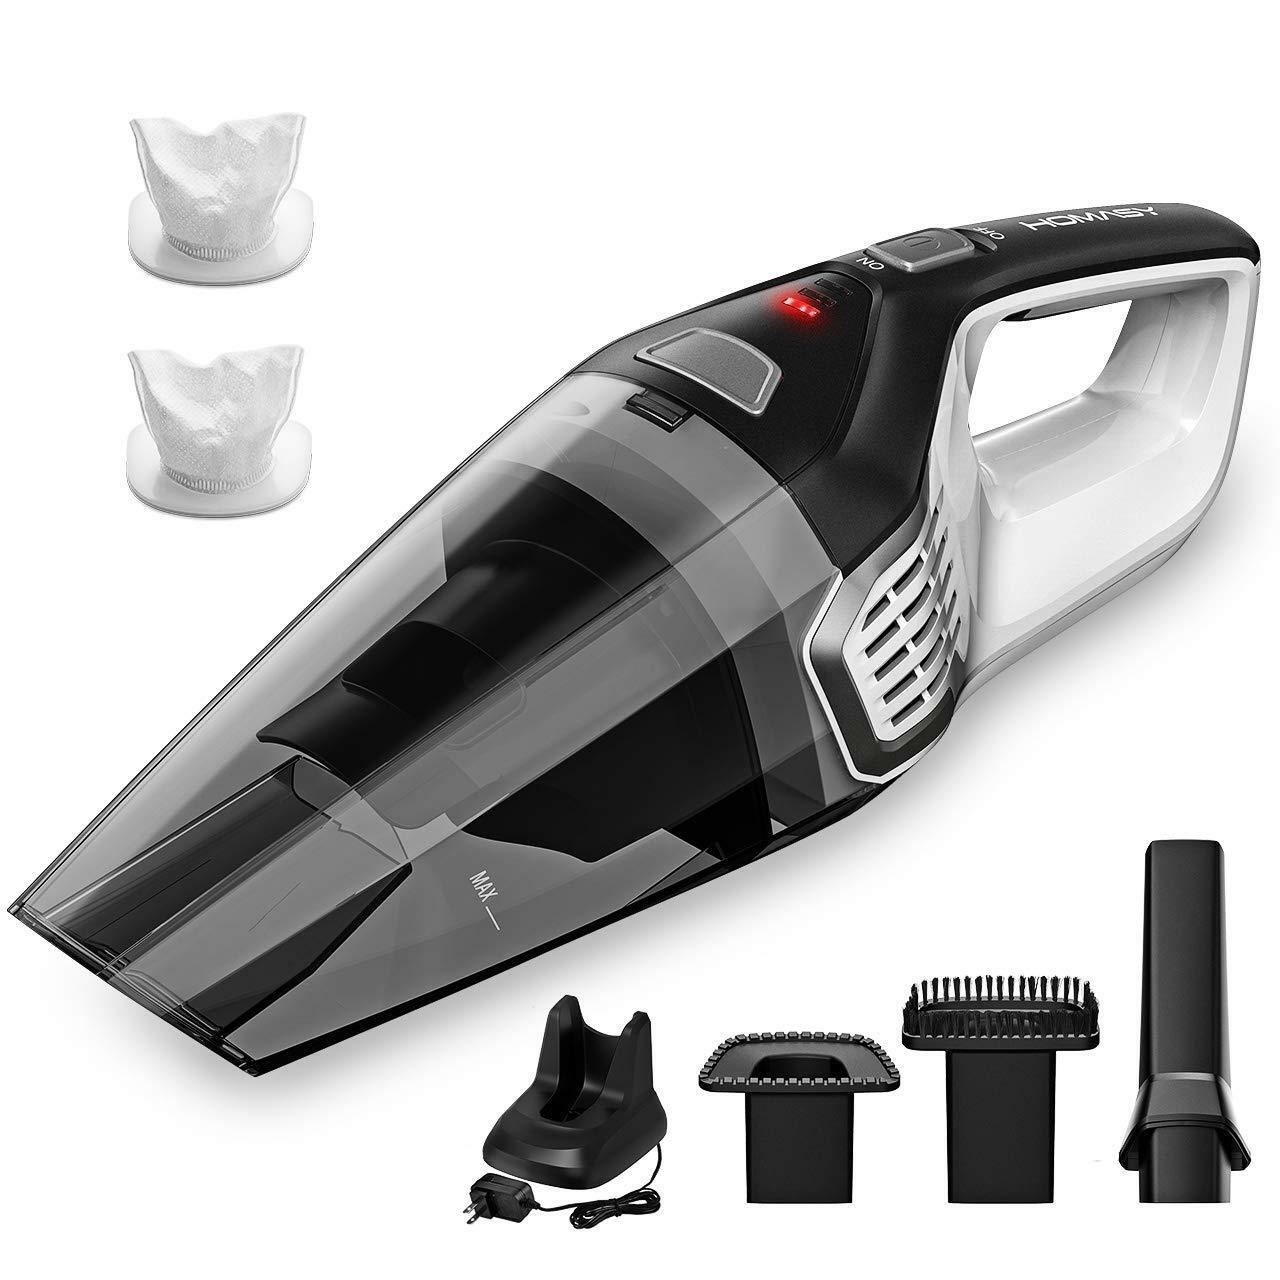 Homasy Portable Handheld Vacuum Cleaner, 6KPA Powerful Cyclonic Suction Vacuum